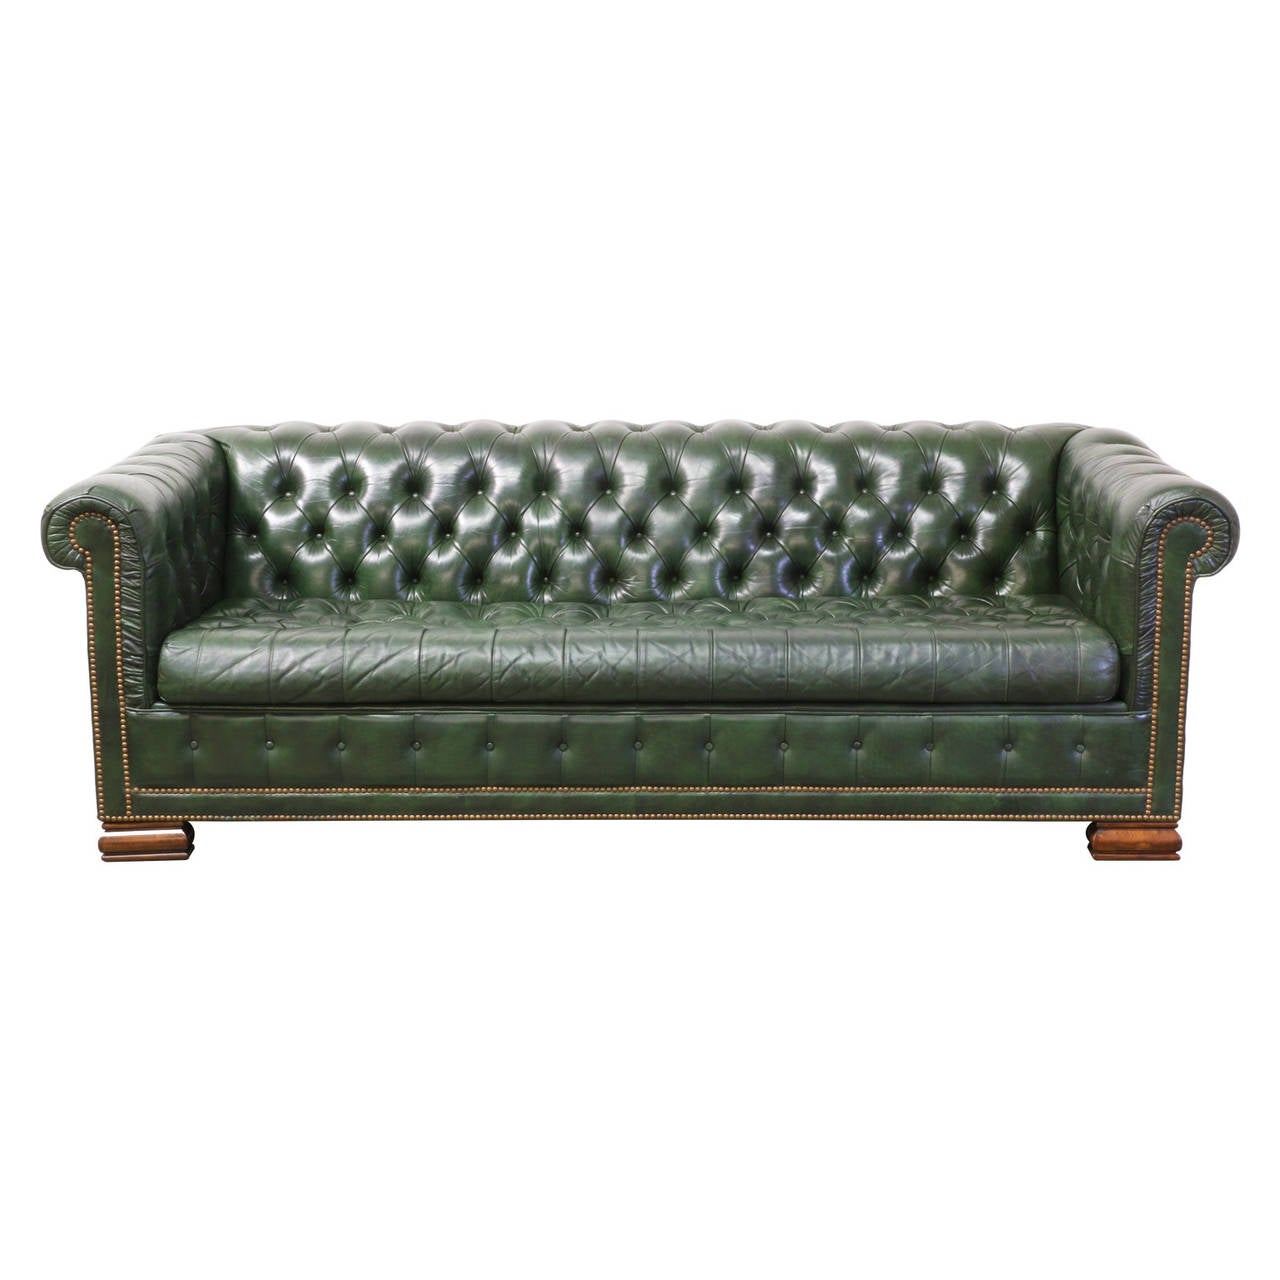 vintage green leather chesterfield sofa bed at 1stdibs